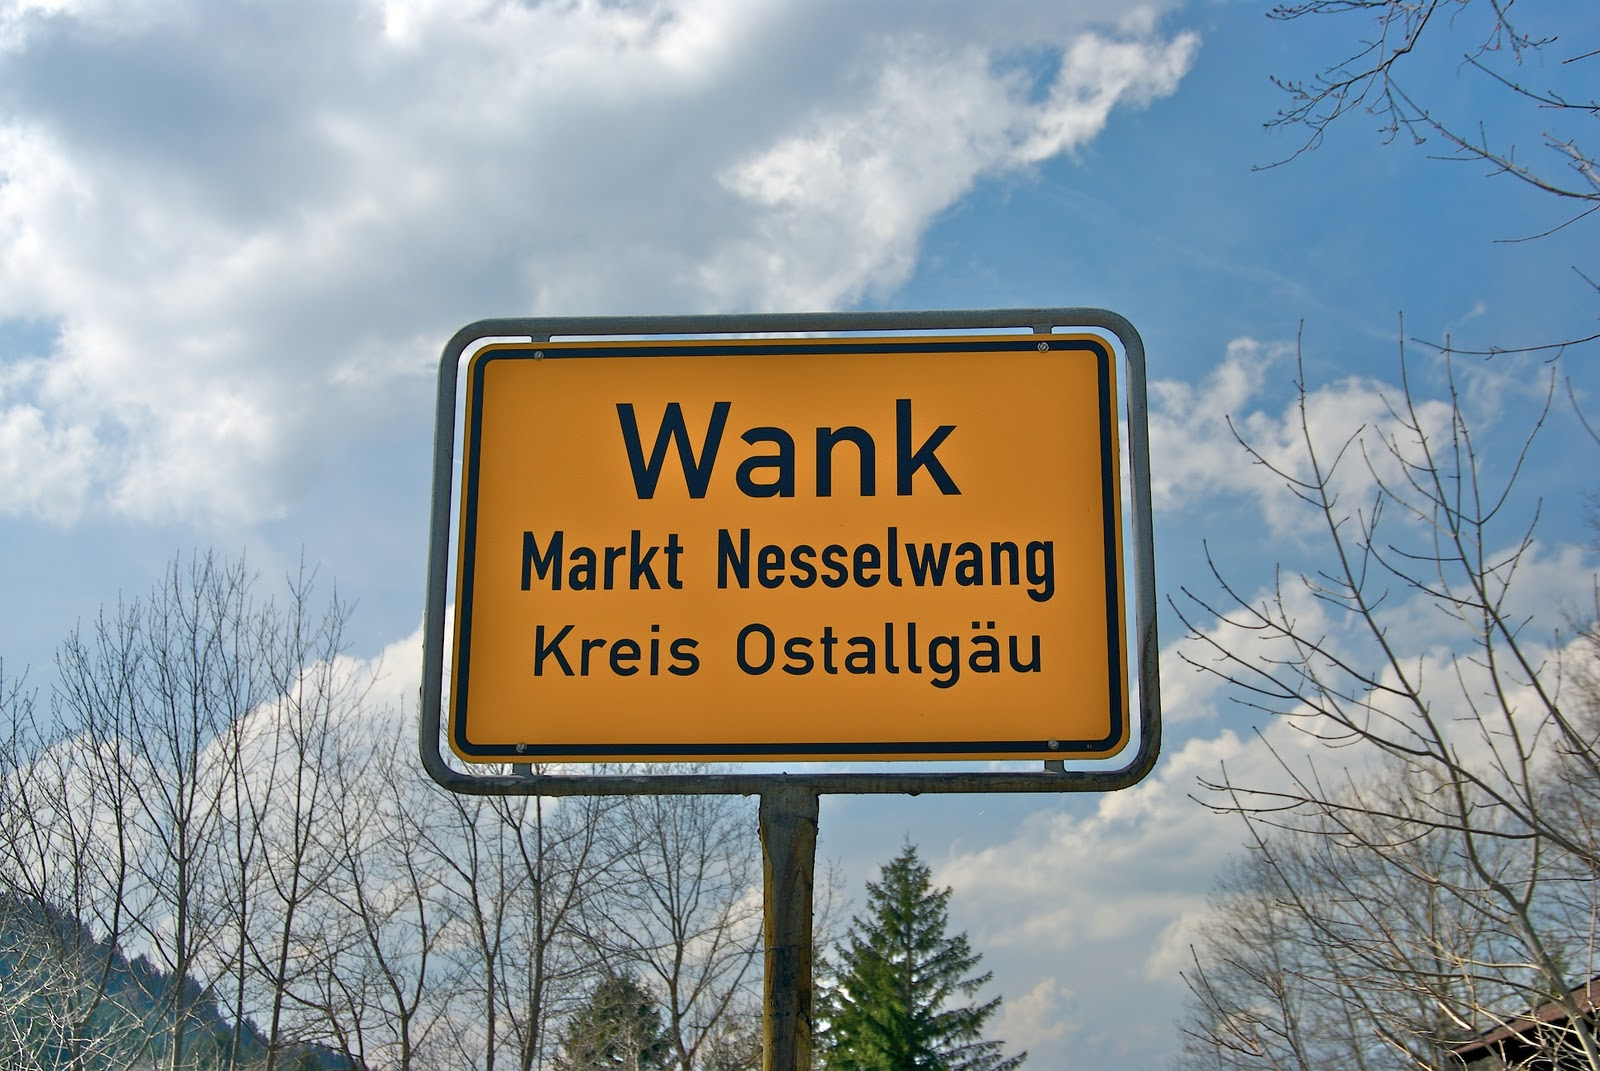 wank Funny Town Names From Around the World